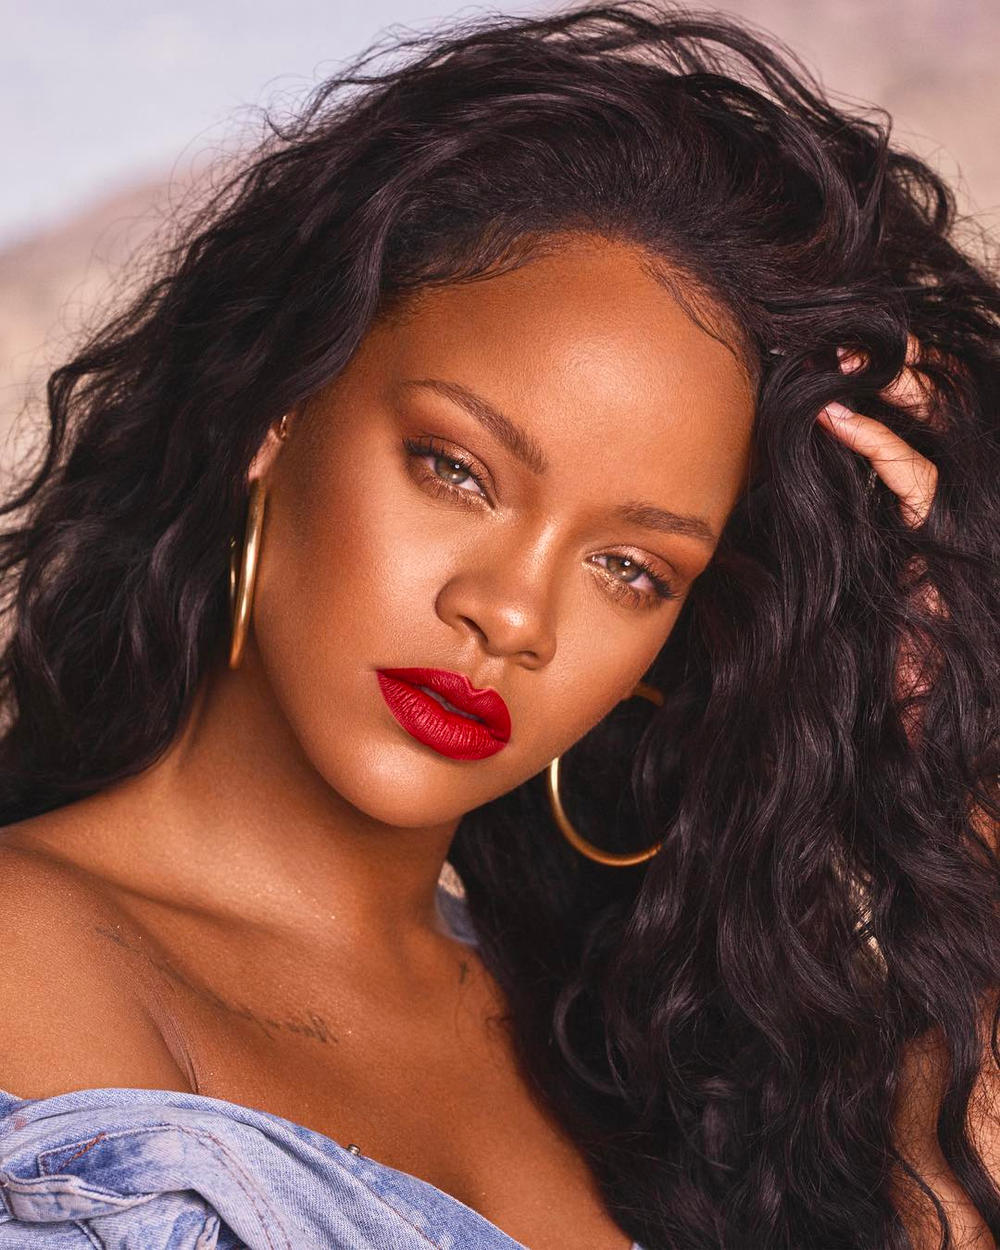 Rihanna Fenty Beauty Body Lava Makeup Glow Shimmer Highlighter Cosmetics Instagram Stories First Look Release Information Price Where to Buy 2018 March Illuminizer